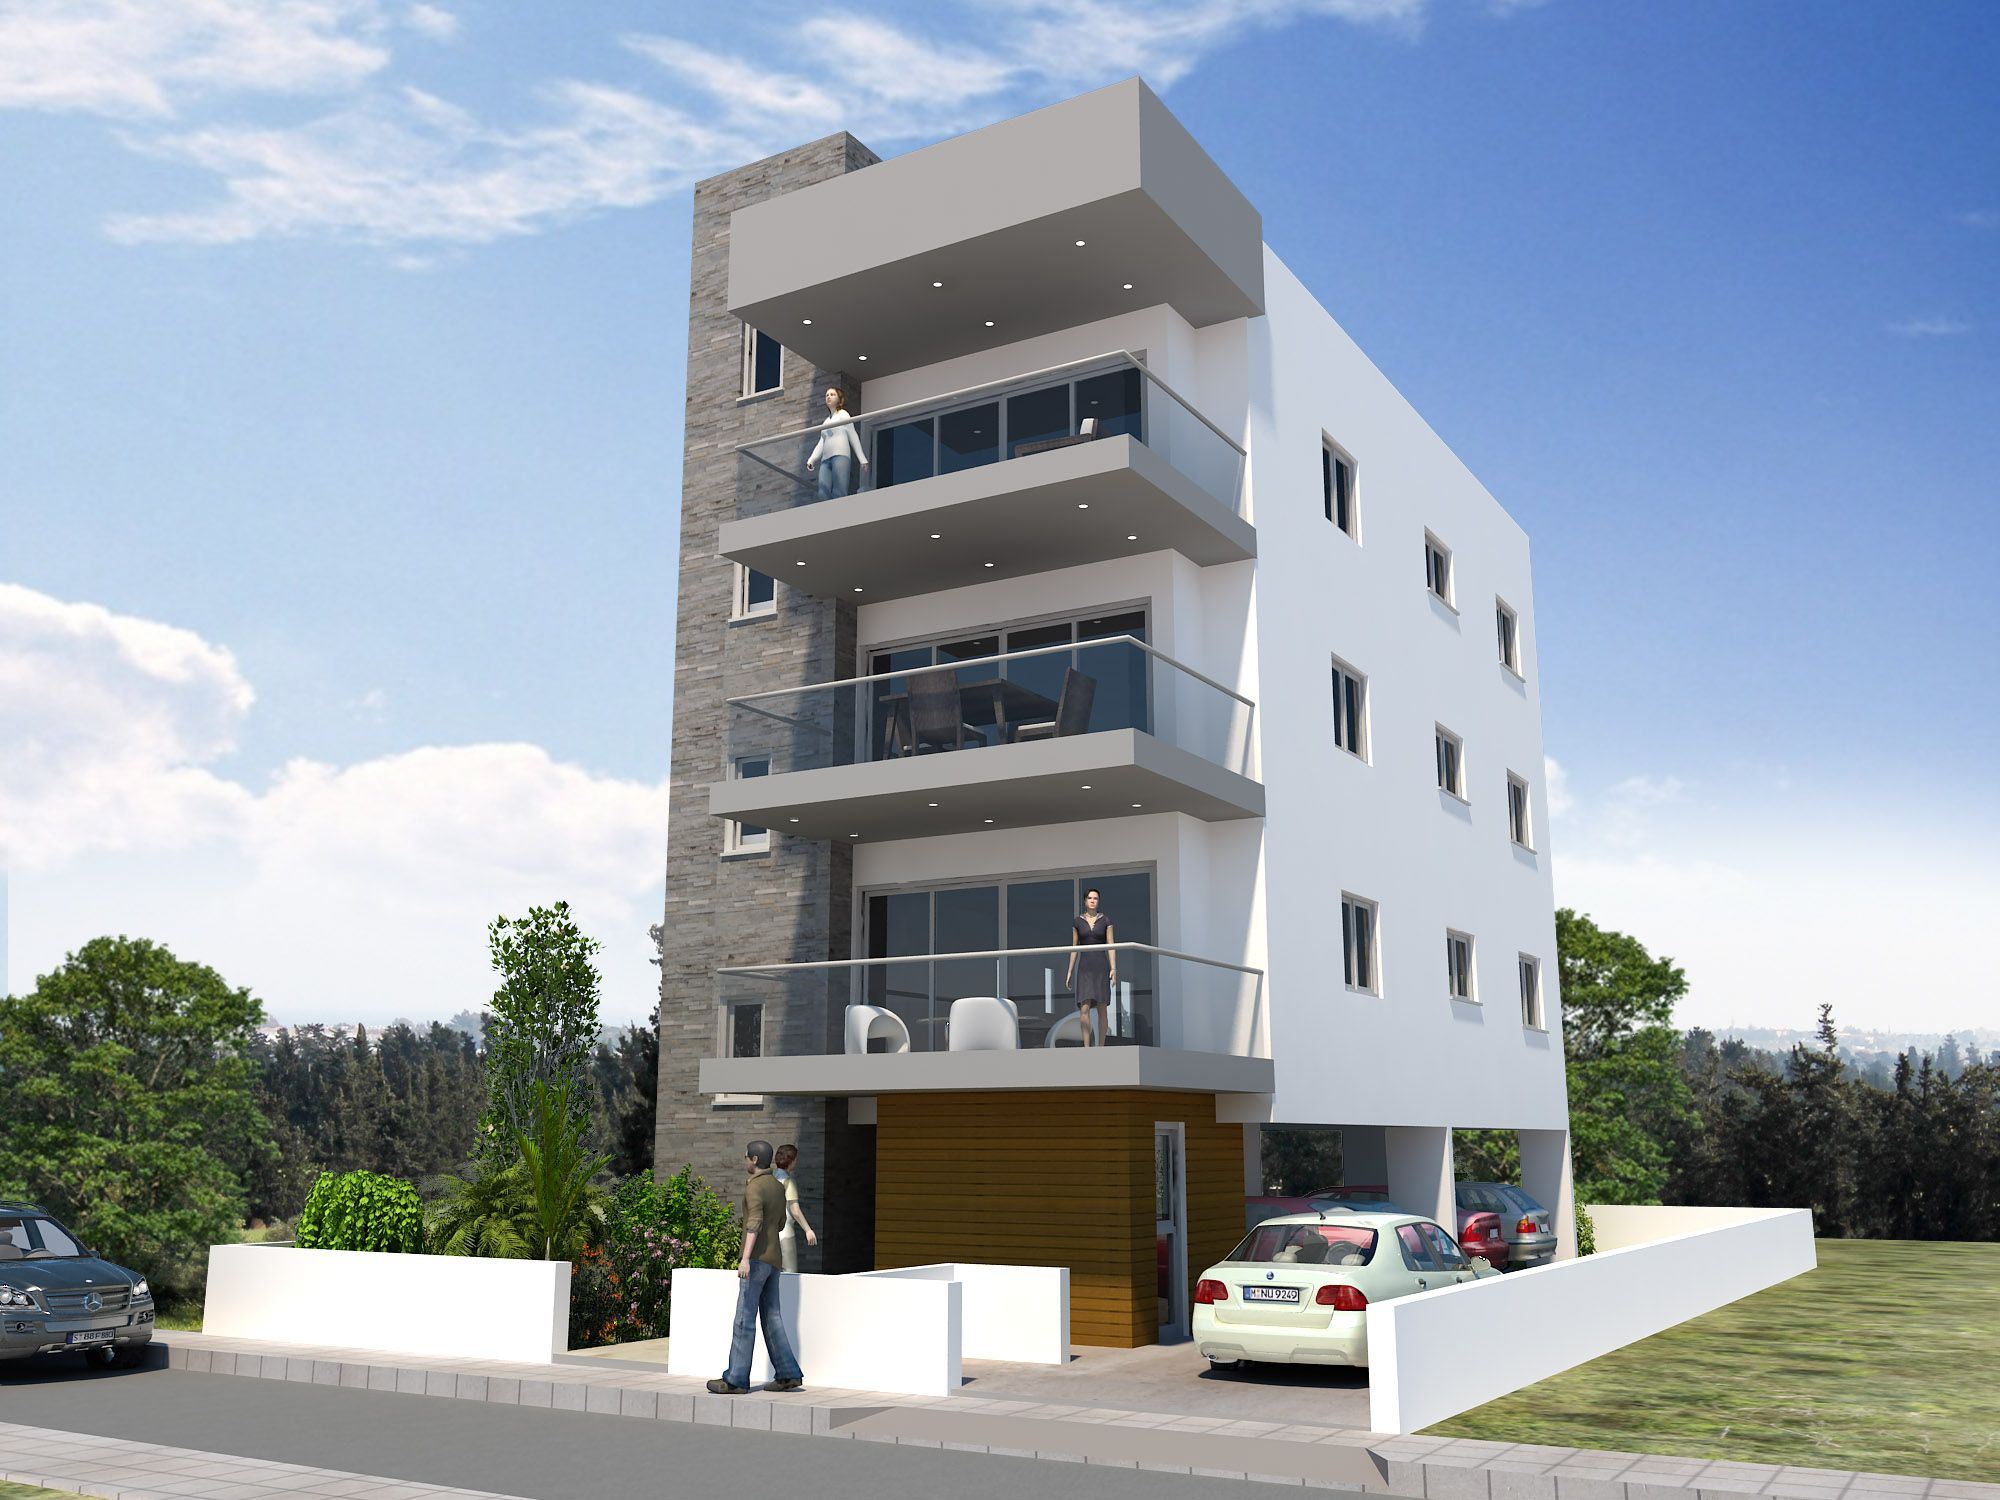 3 Storey Residential Apartment Building Google Search